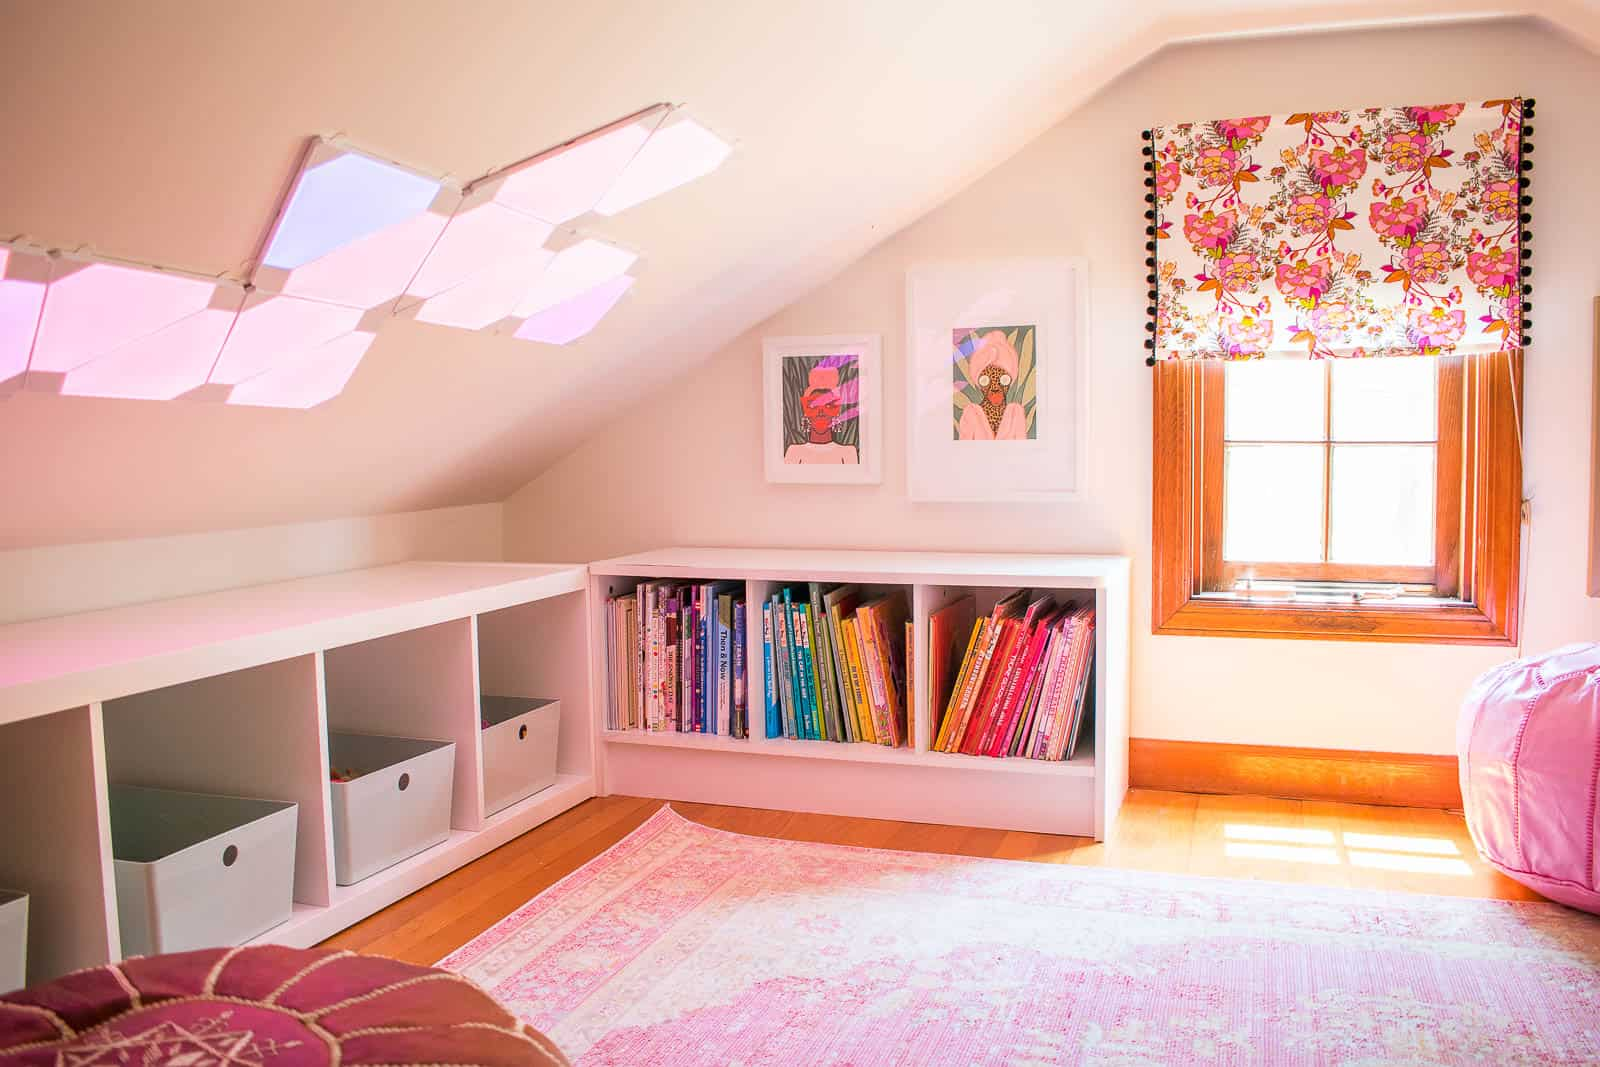 LED tiles in reading nook